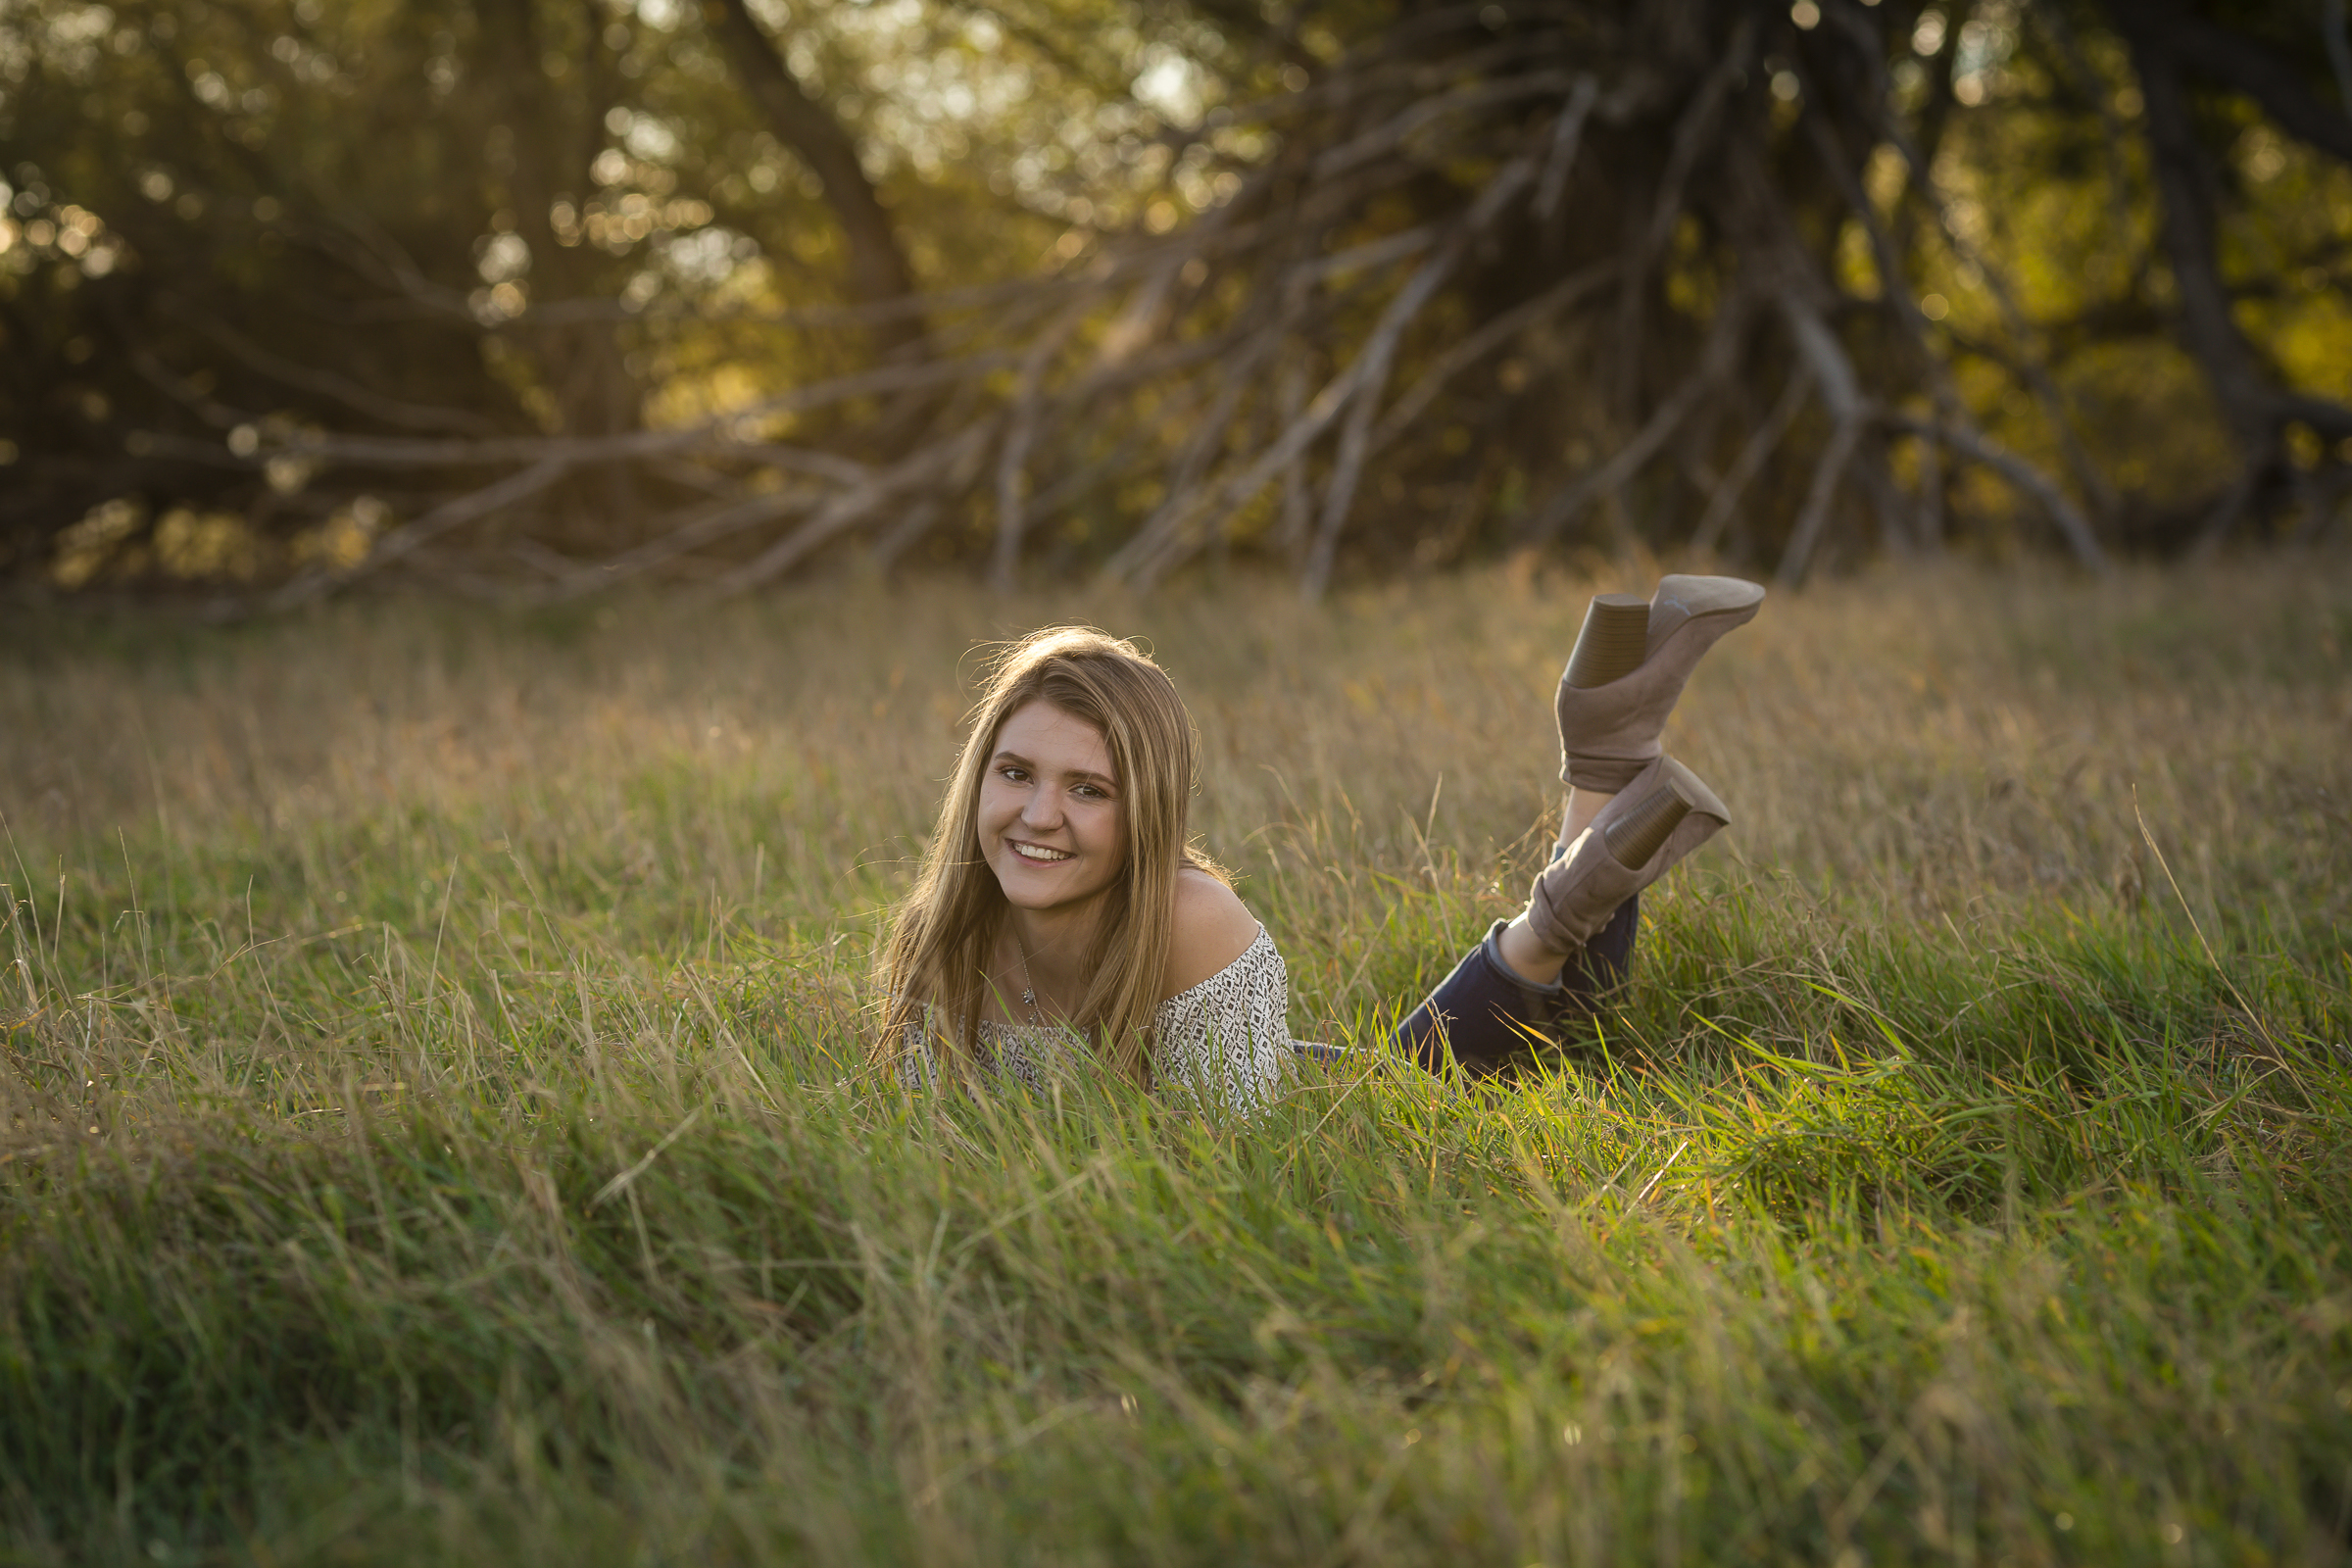 High School Senior Colorado Shelli Quattlebaum Photography